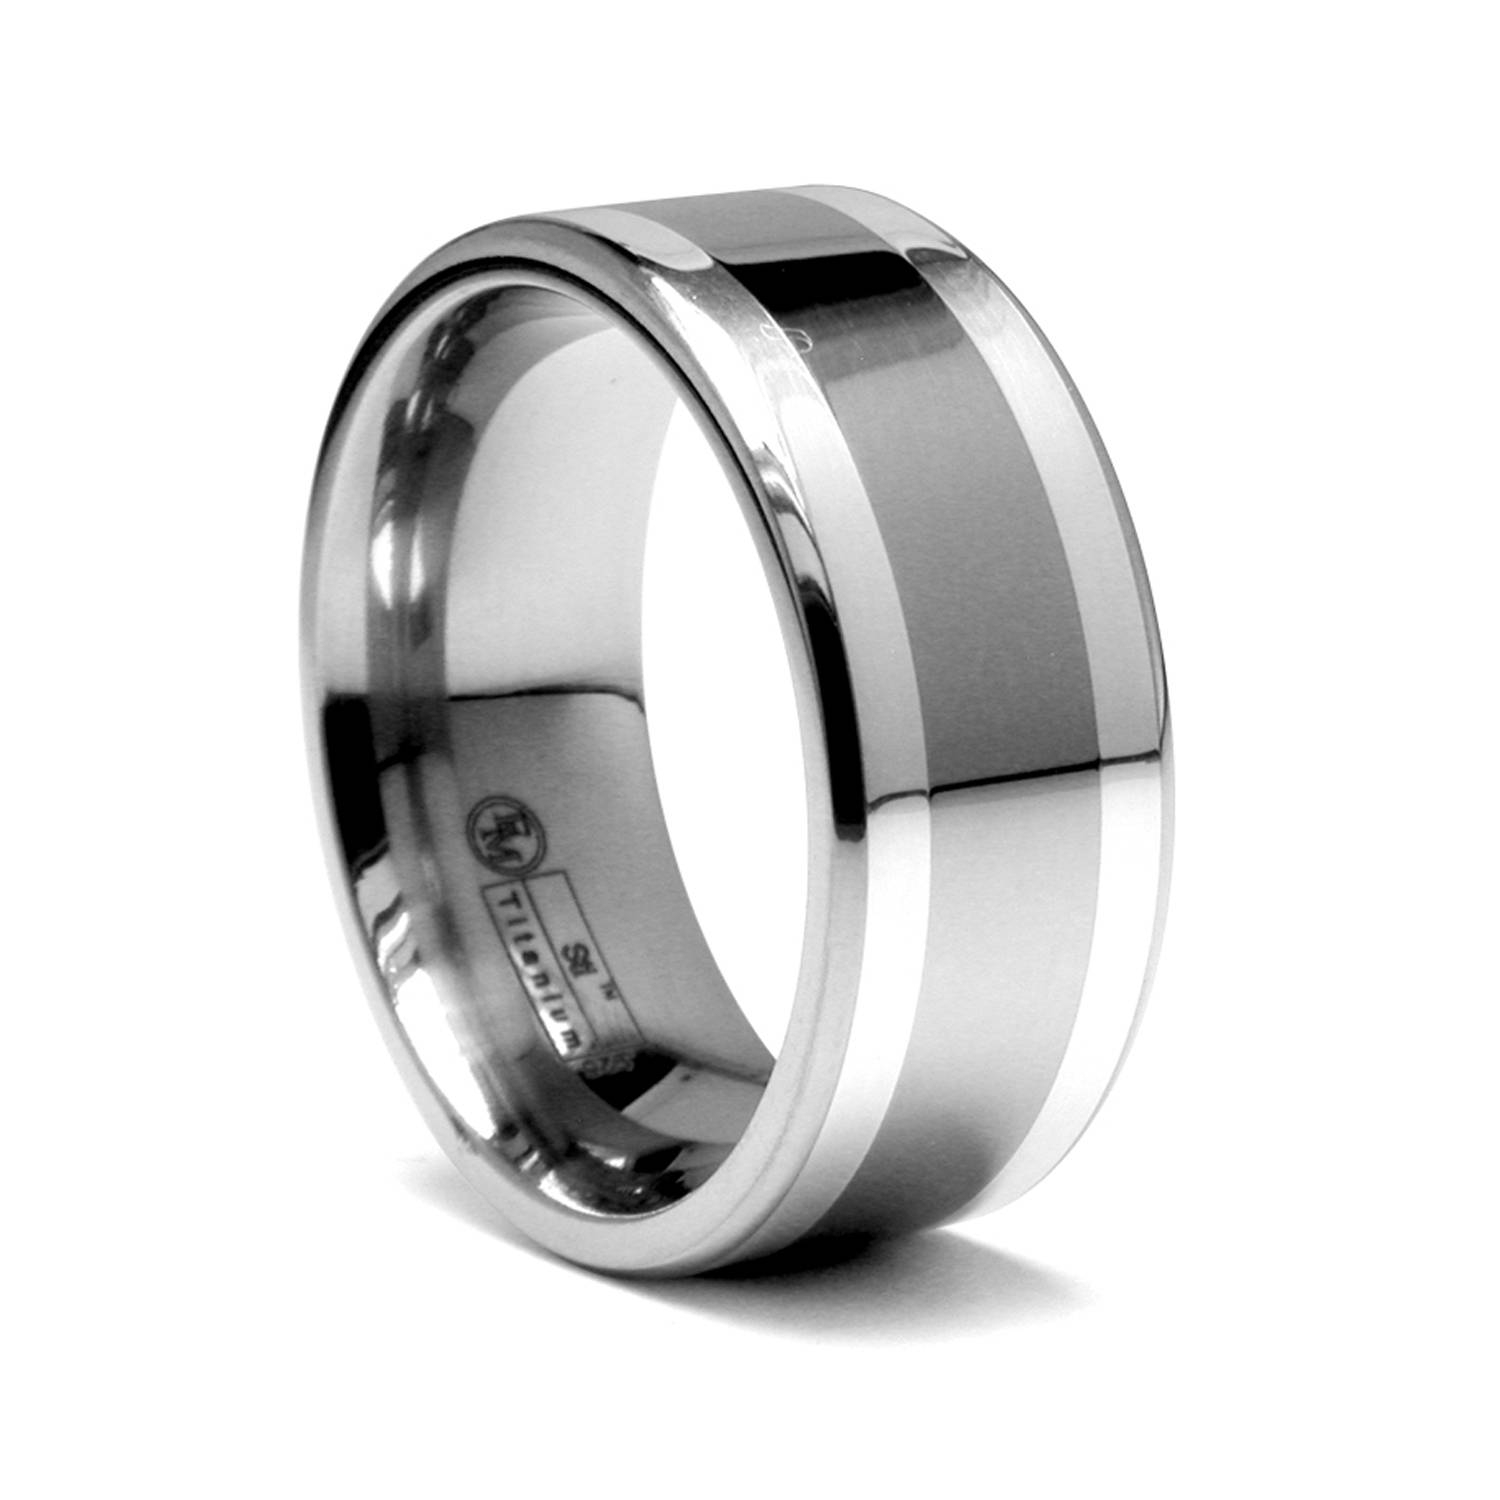 Titanium Men's Ring With Silver Inlays | Alpha Rings Inside Titanium Mens Wedding Bands (View 5 of 15)